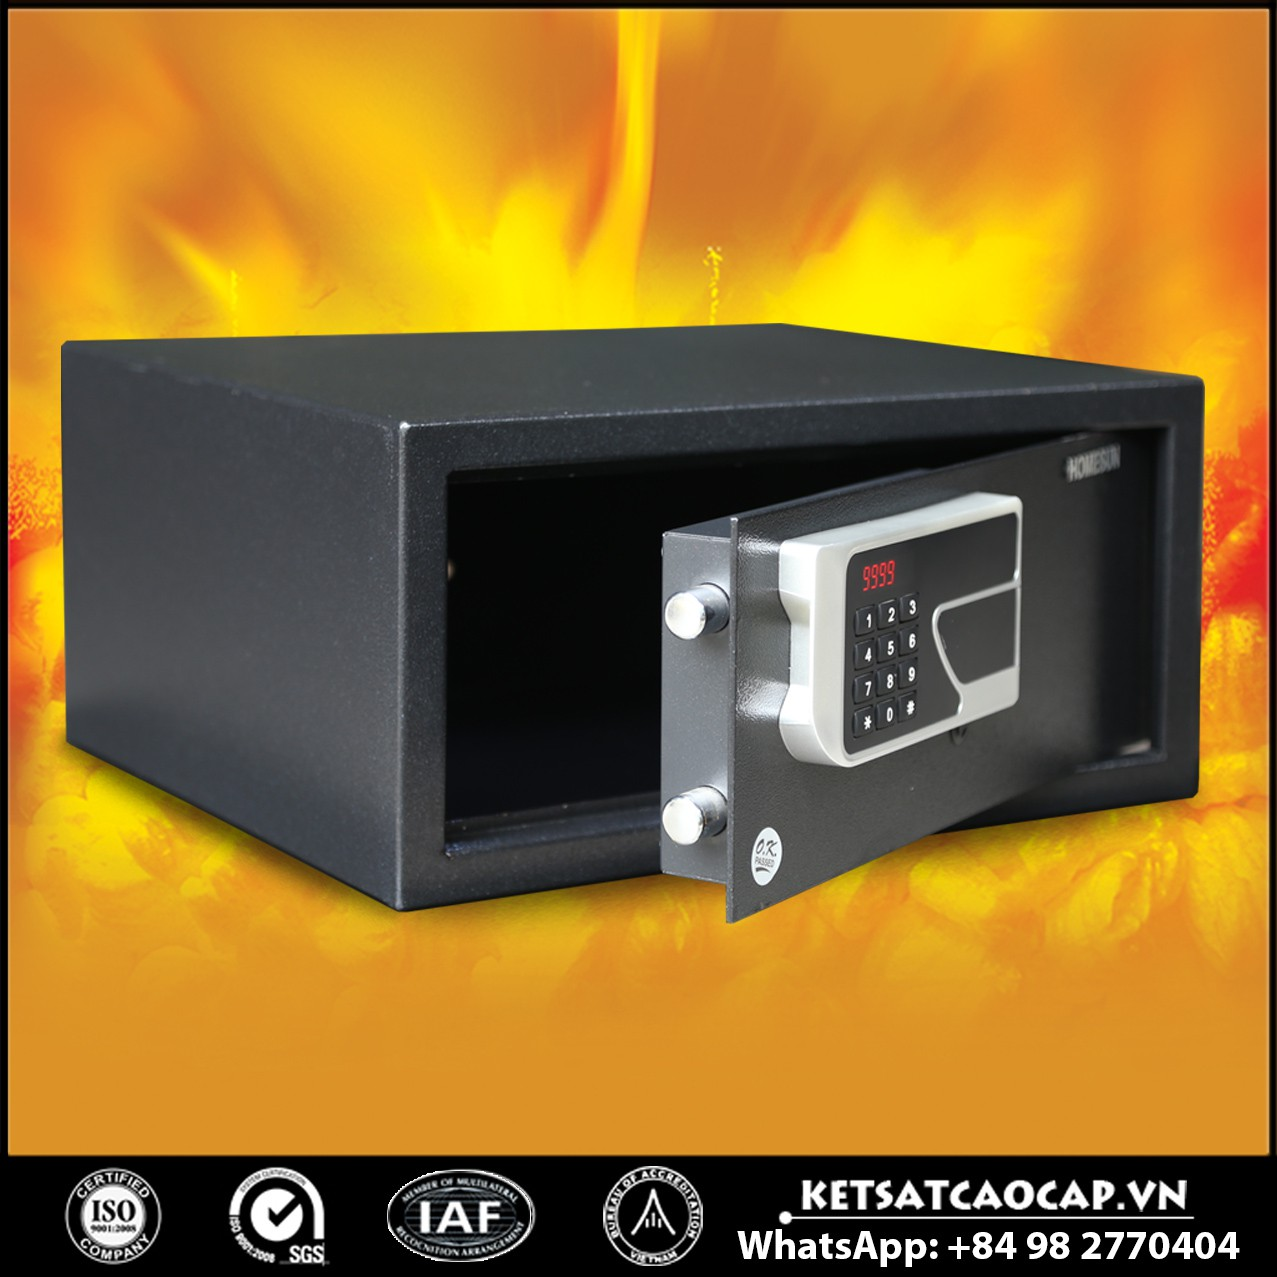 Hotel Security Box Perfect For Hotels